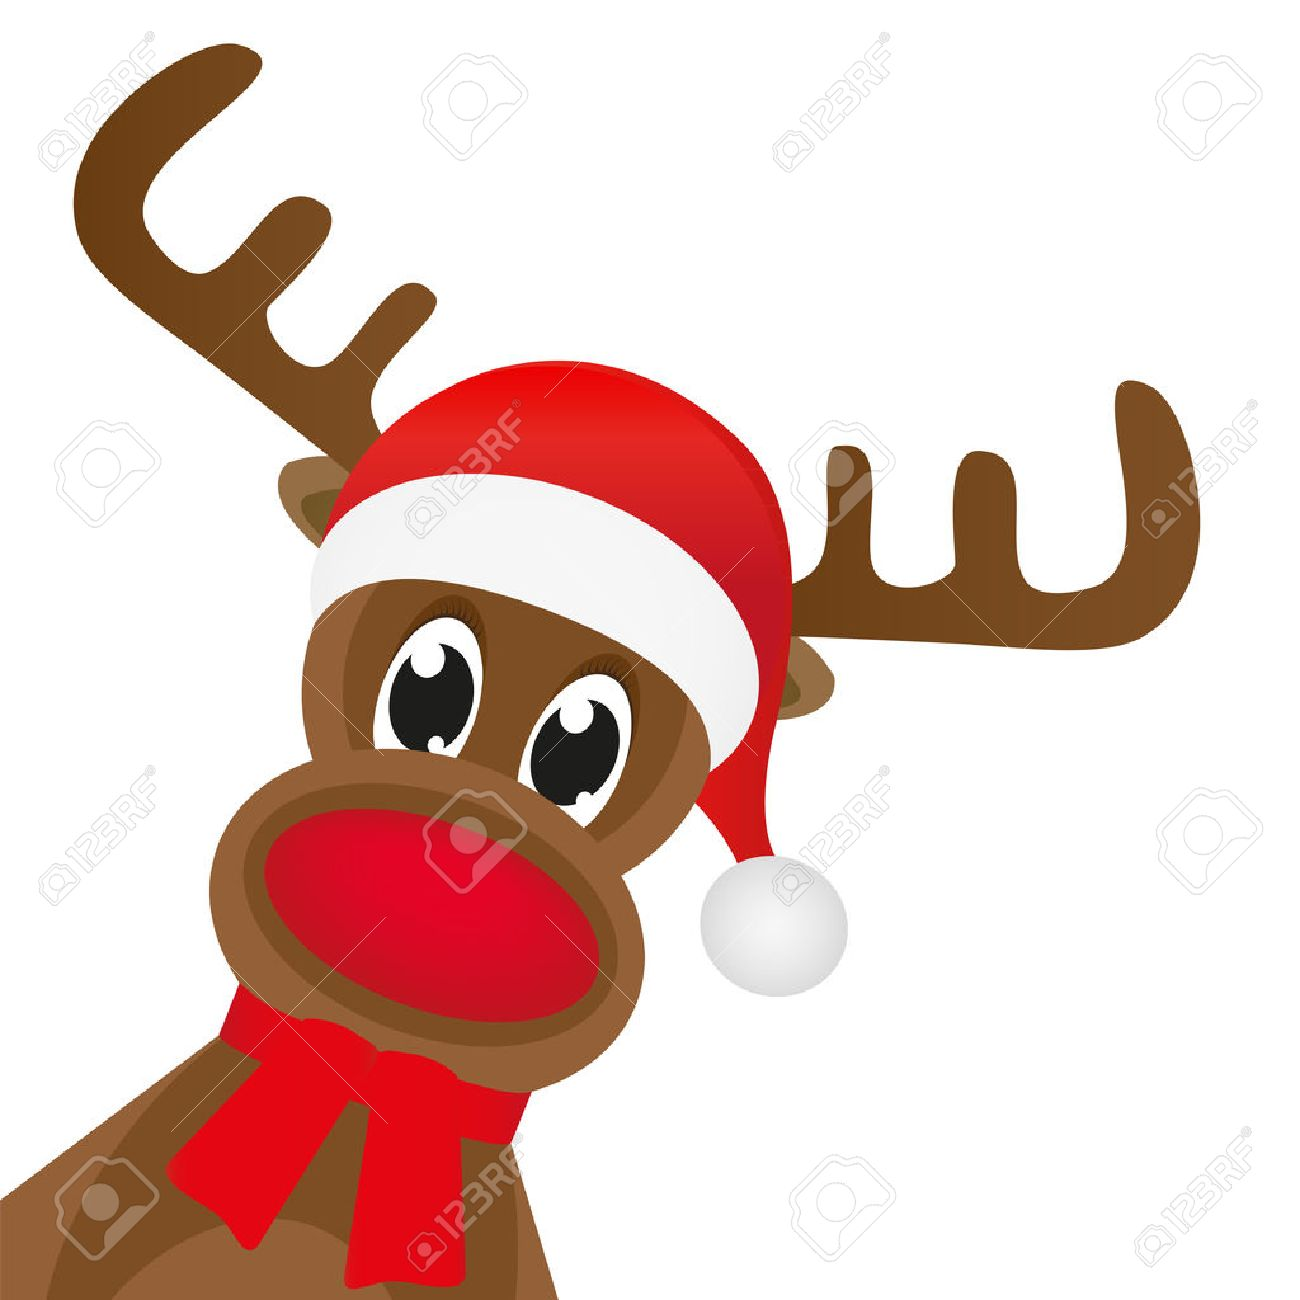 Christmas reindeer in a red scarf - 23648589